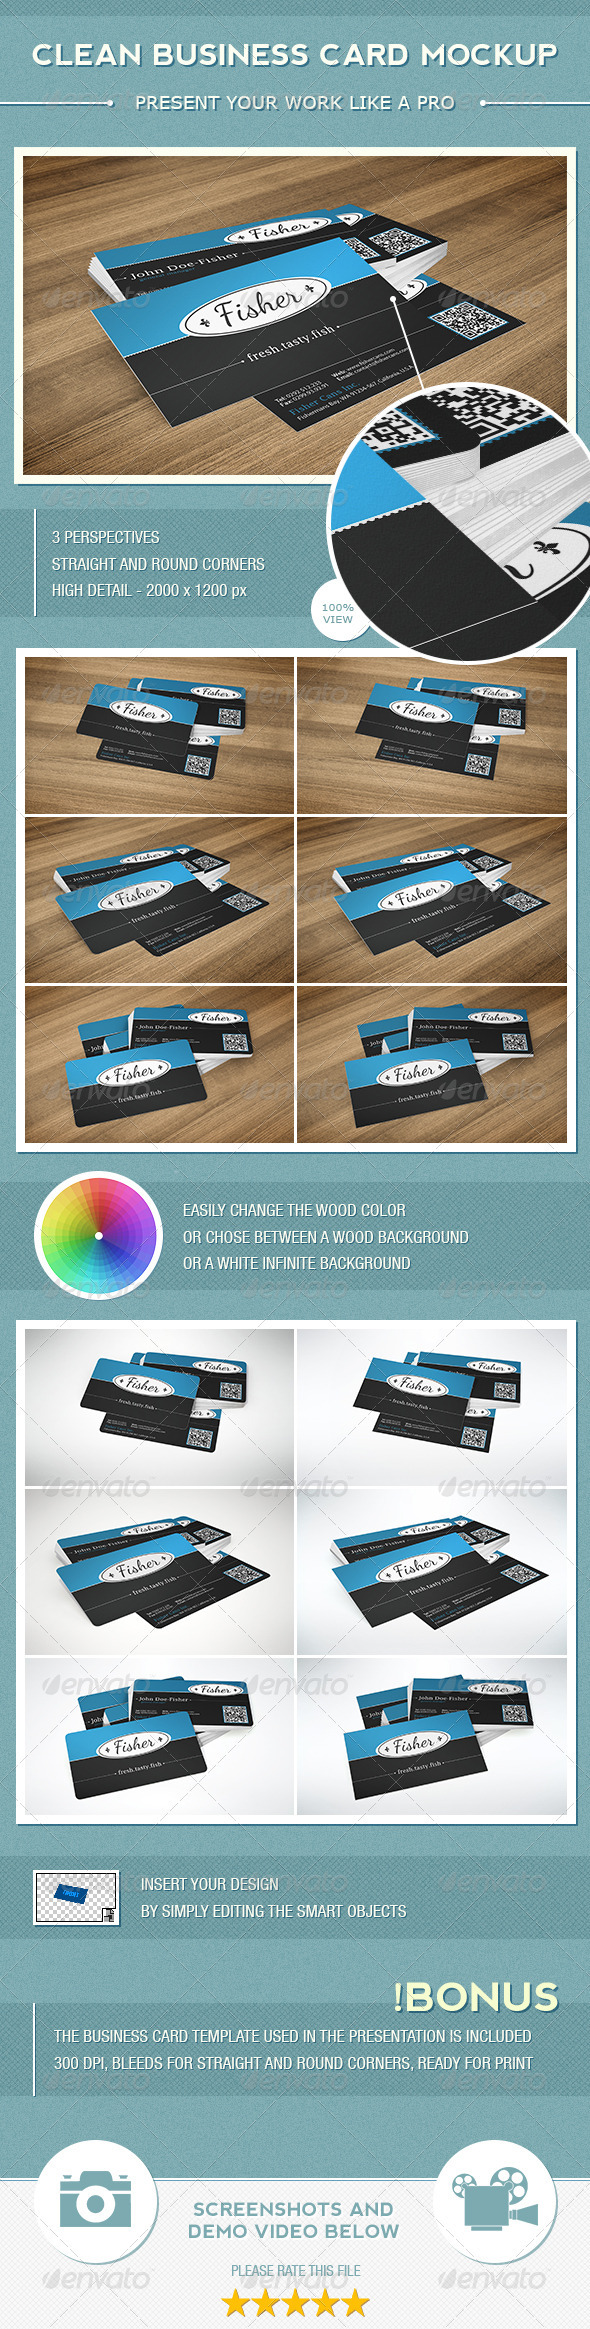 Clean Business Card Mockup - Business Cards Print